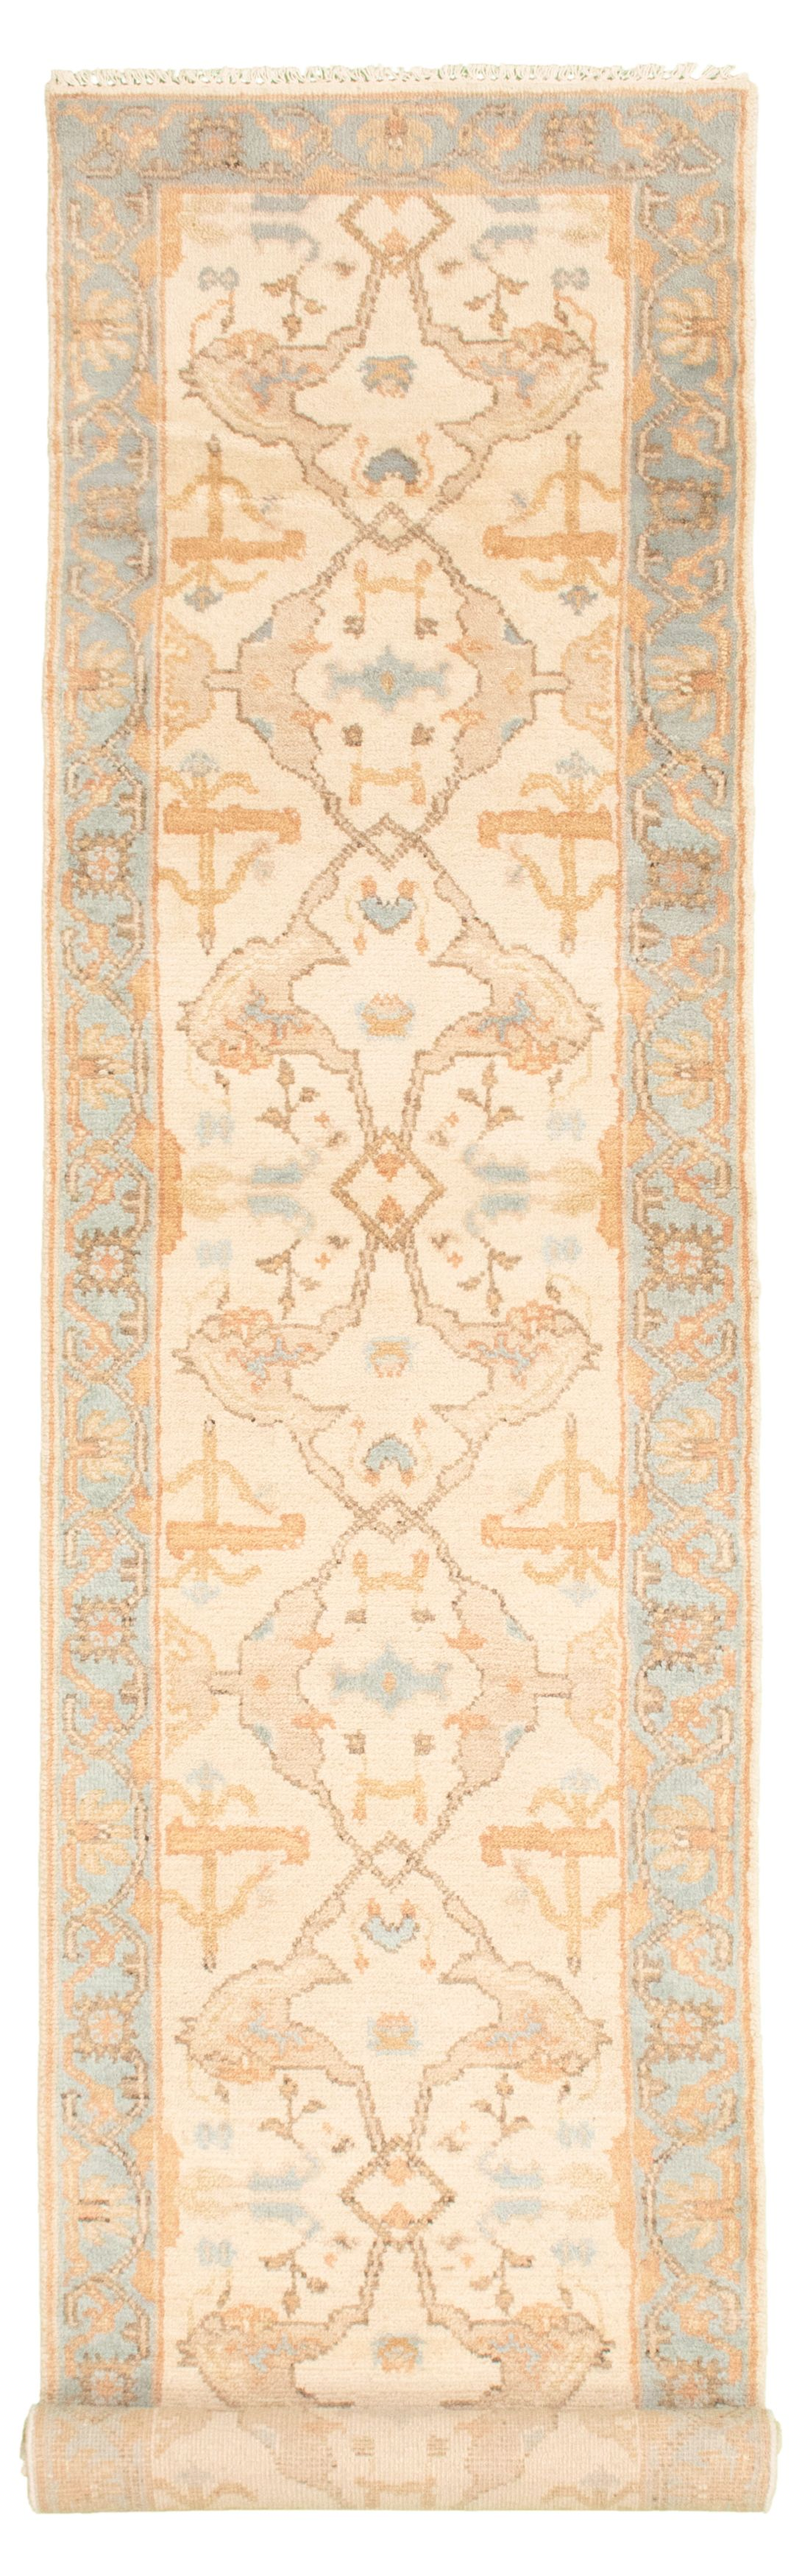 "Hand-knotted Royal Ushak Cream Wool Rug 2'7"" x 11'9""  Size: 2'7"" x 11'9"""